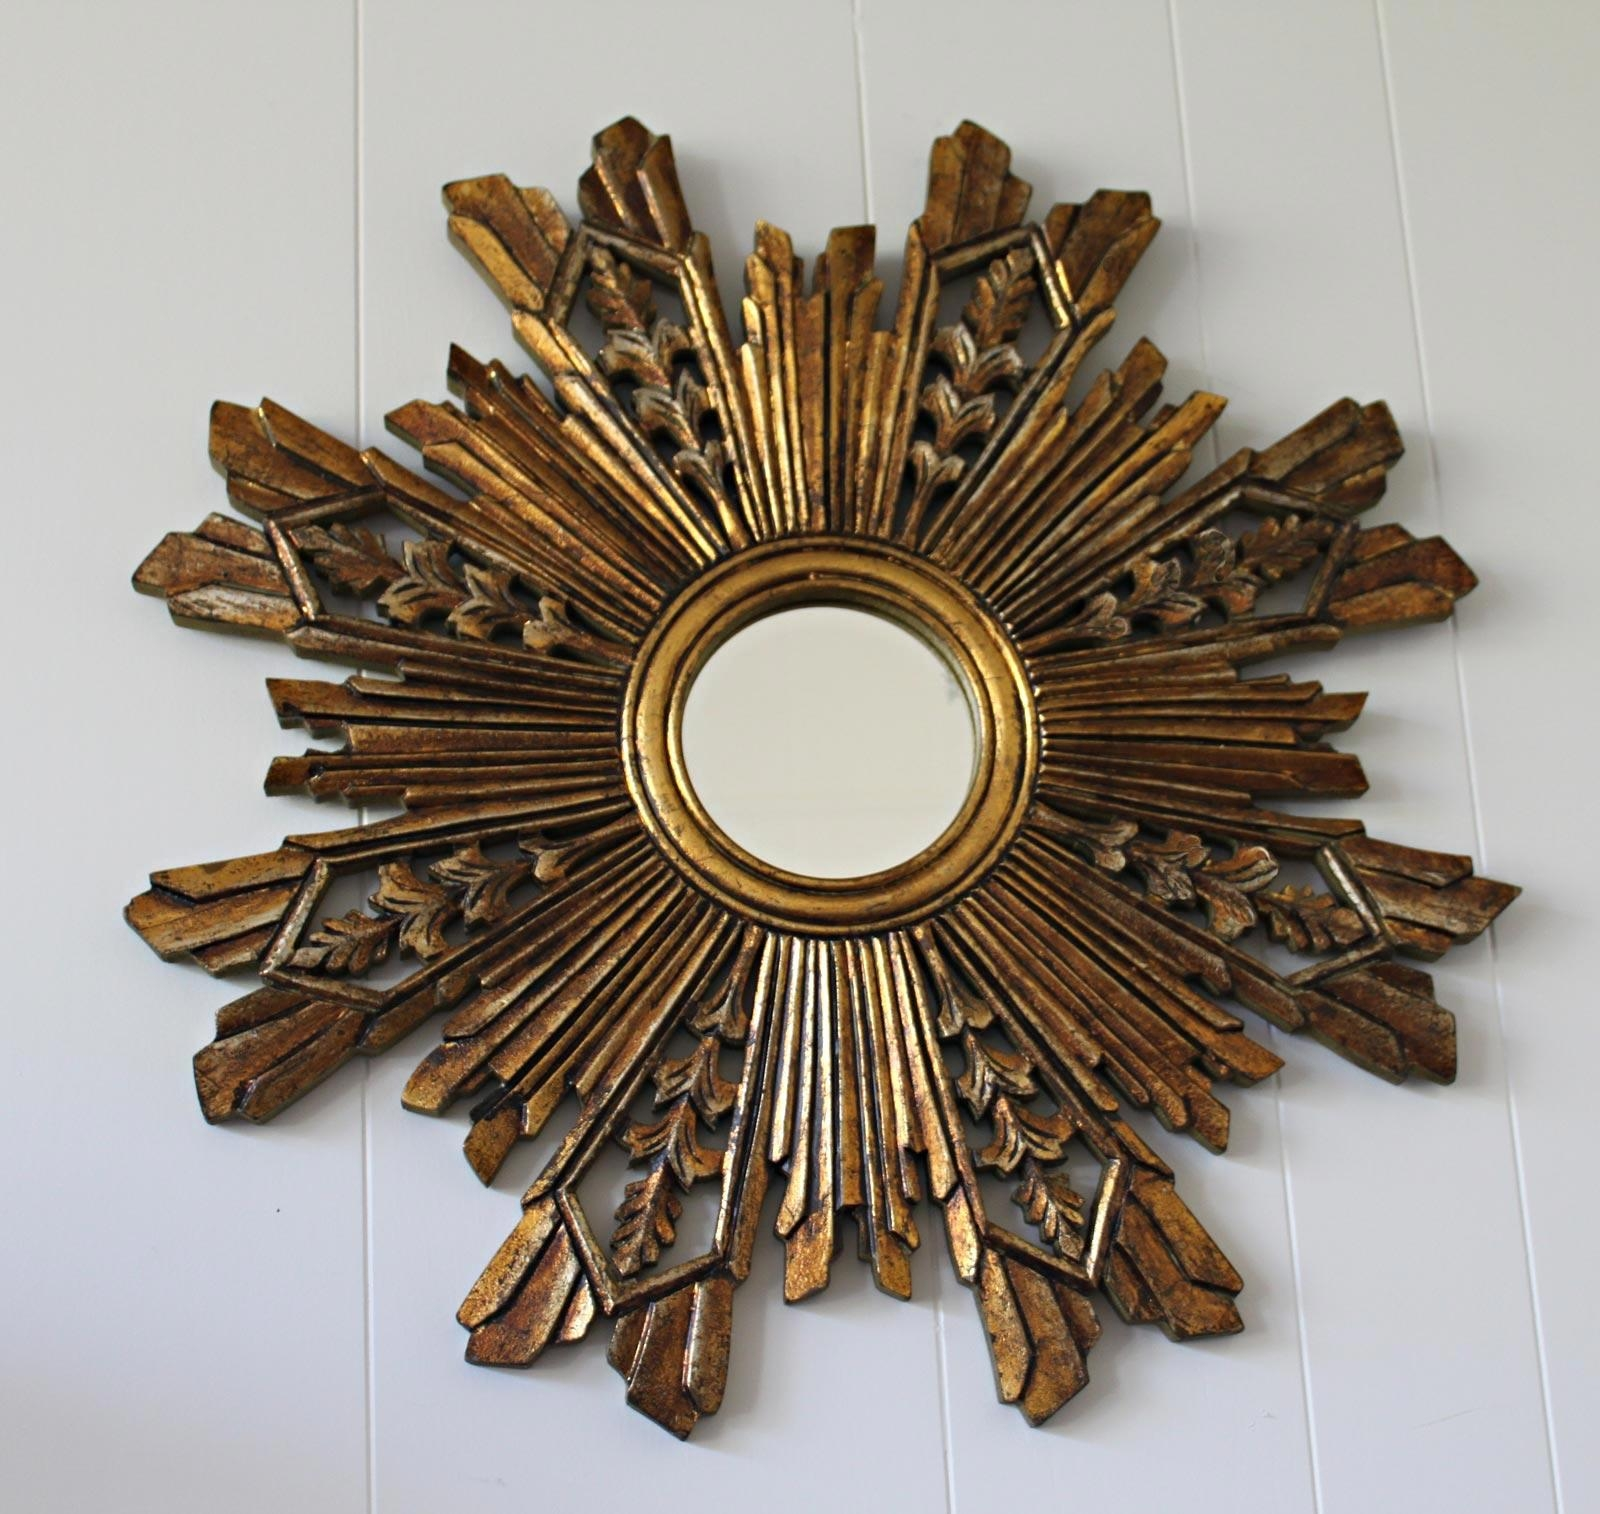 Decorating: Pretty Gold Sunburst Mirror For Wall Accessories Ideas Within Bronze Starburst Mirror (Image 5 of 21)